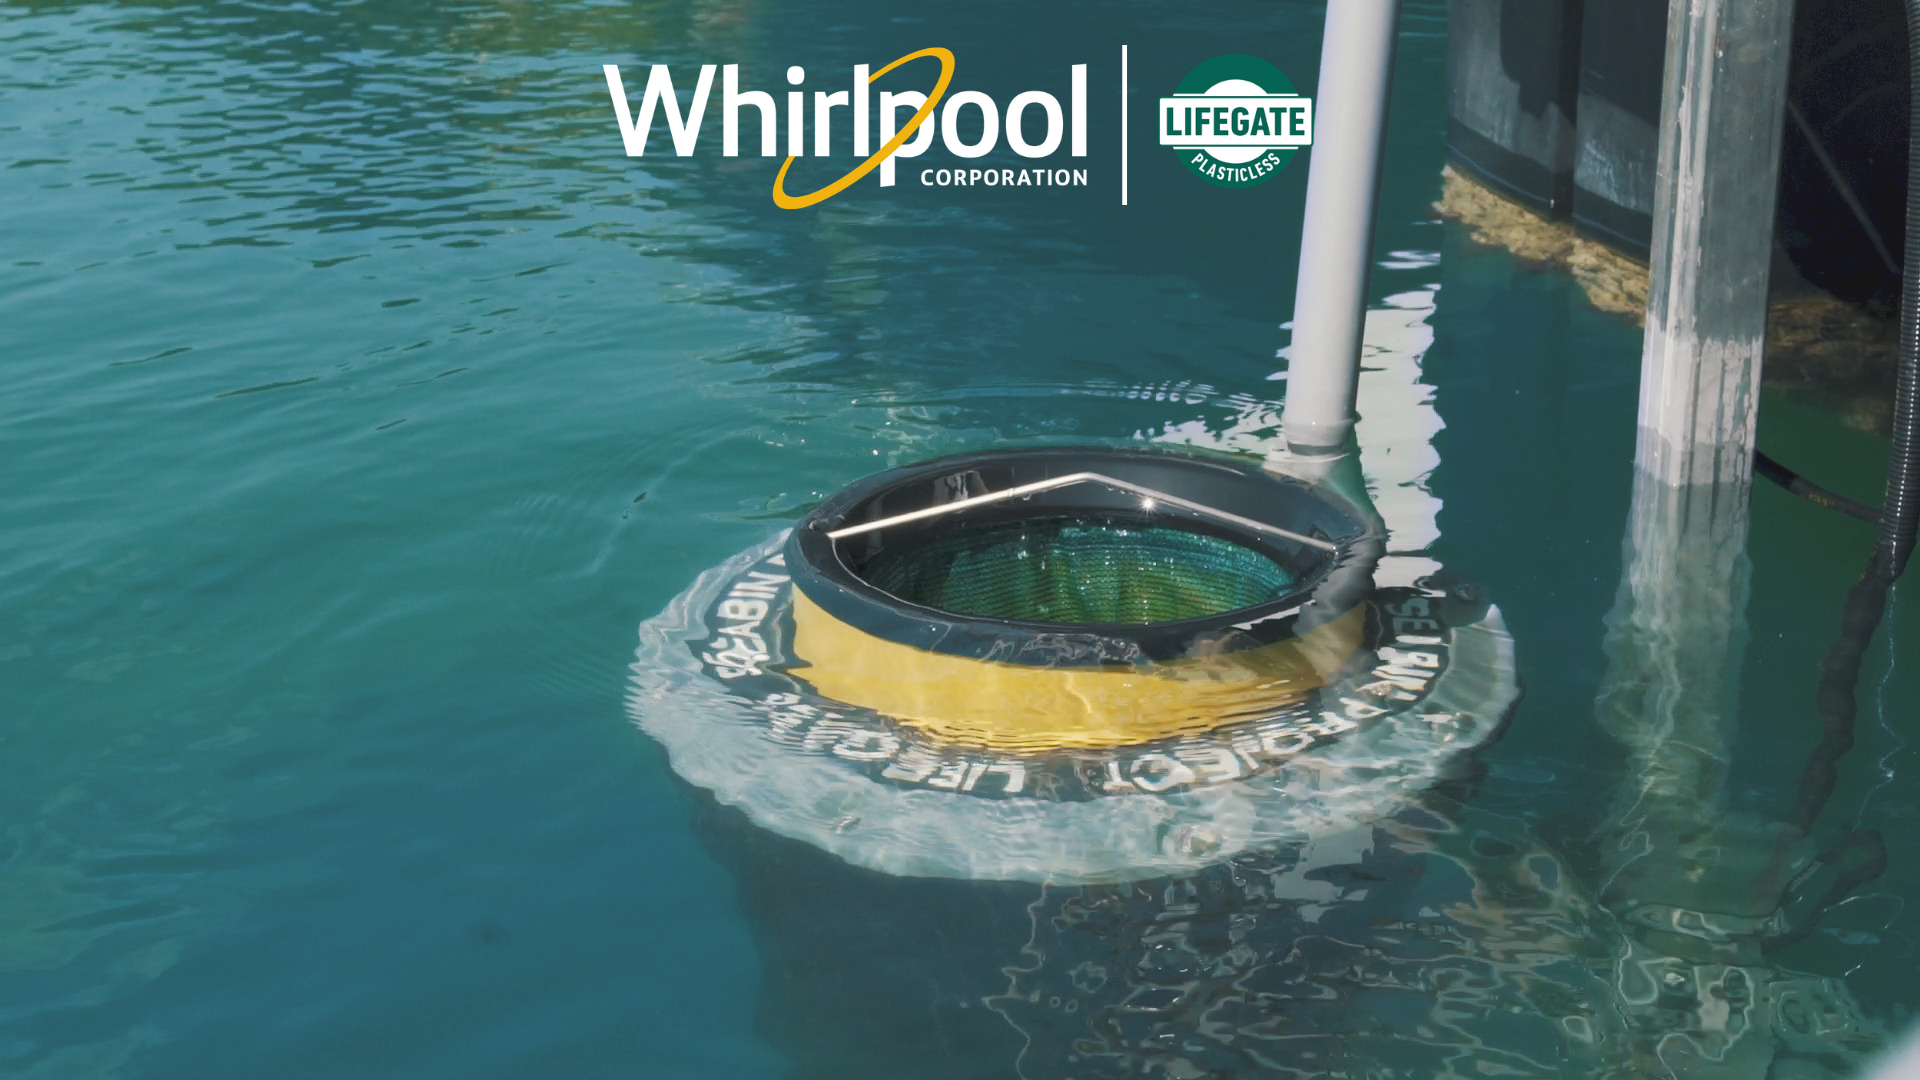 Whirlpool EMEA joins Lifegate in the fight against plastics pollution in Italy's seas 6